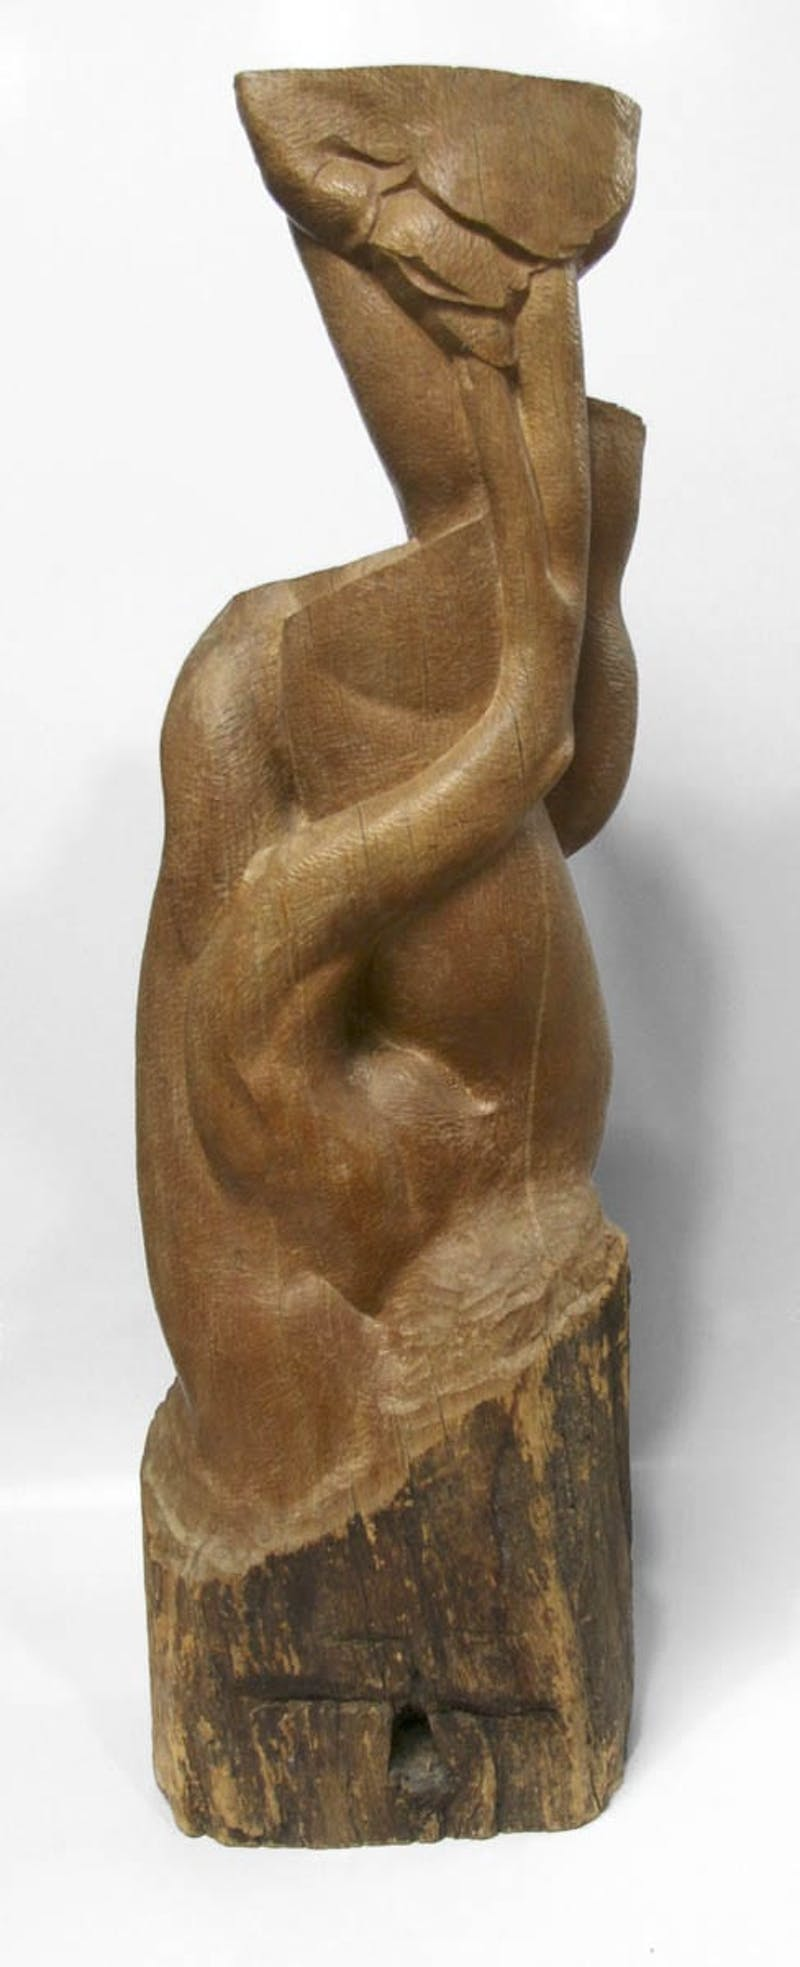 Untitled Wood Carving Image 1